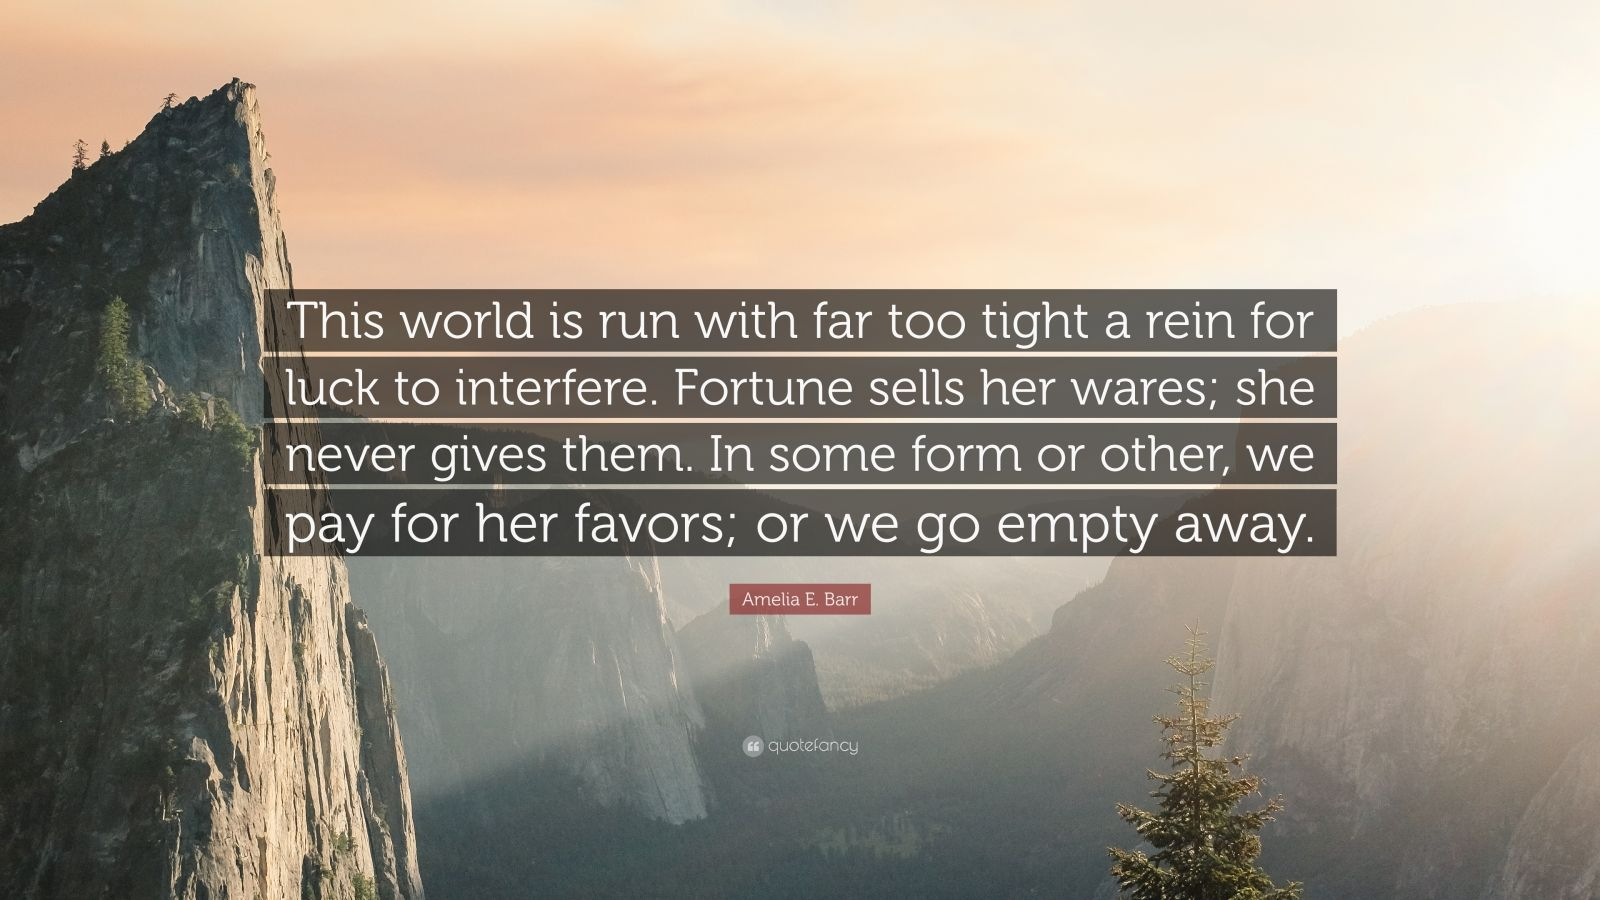 """Amelia E. Barr Quote: """"This world is run with far too tight a rein for luck to interfere. Fortune sells her wares; she never gives them. In some form or other, we pay for her favors; or we go empty away."""""""